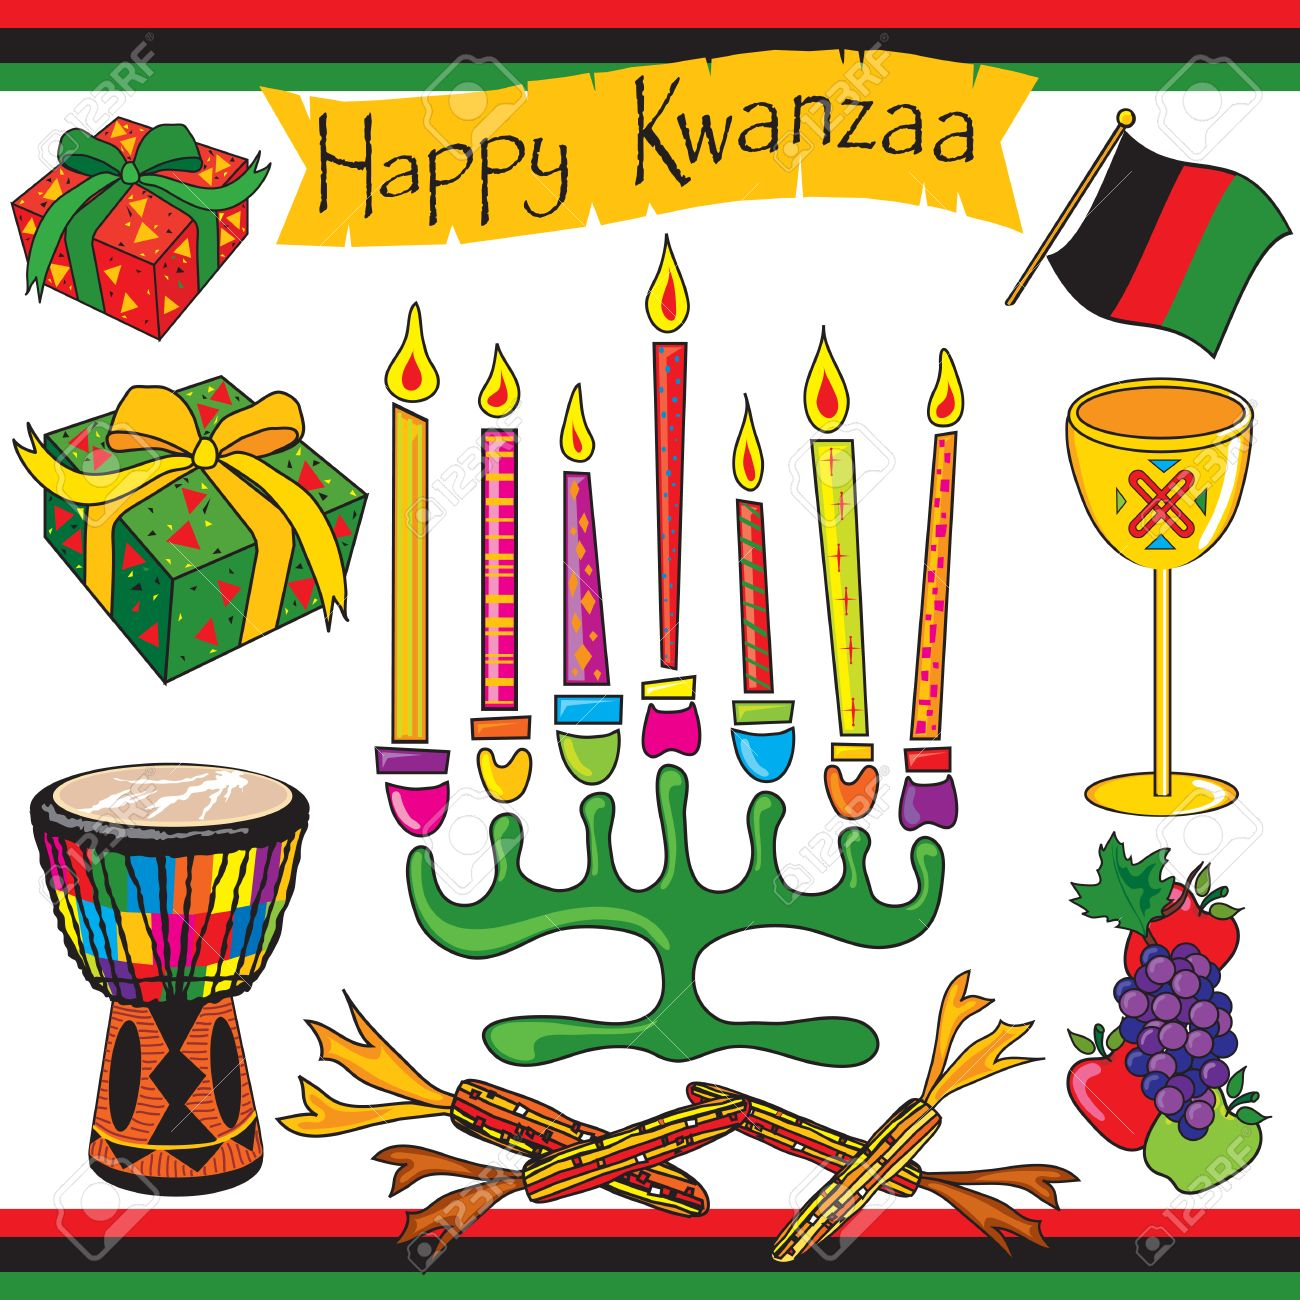 Kwanzaa Clipart Elements And Icons Royalty Free Cliparts, Vectors ...